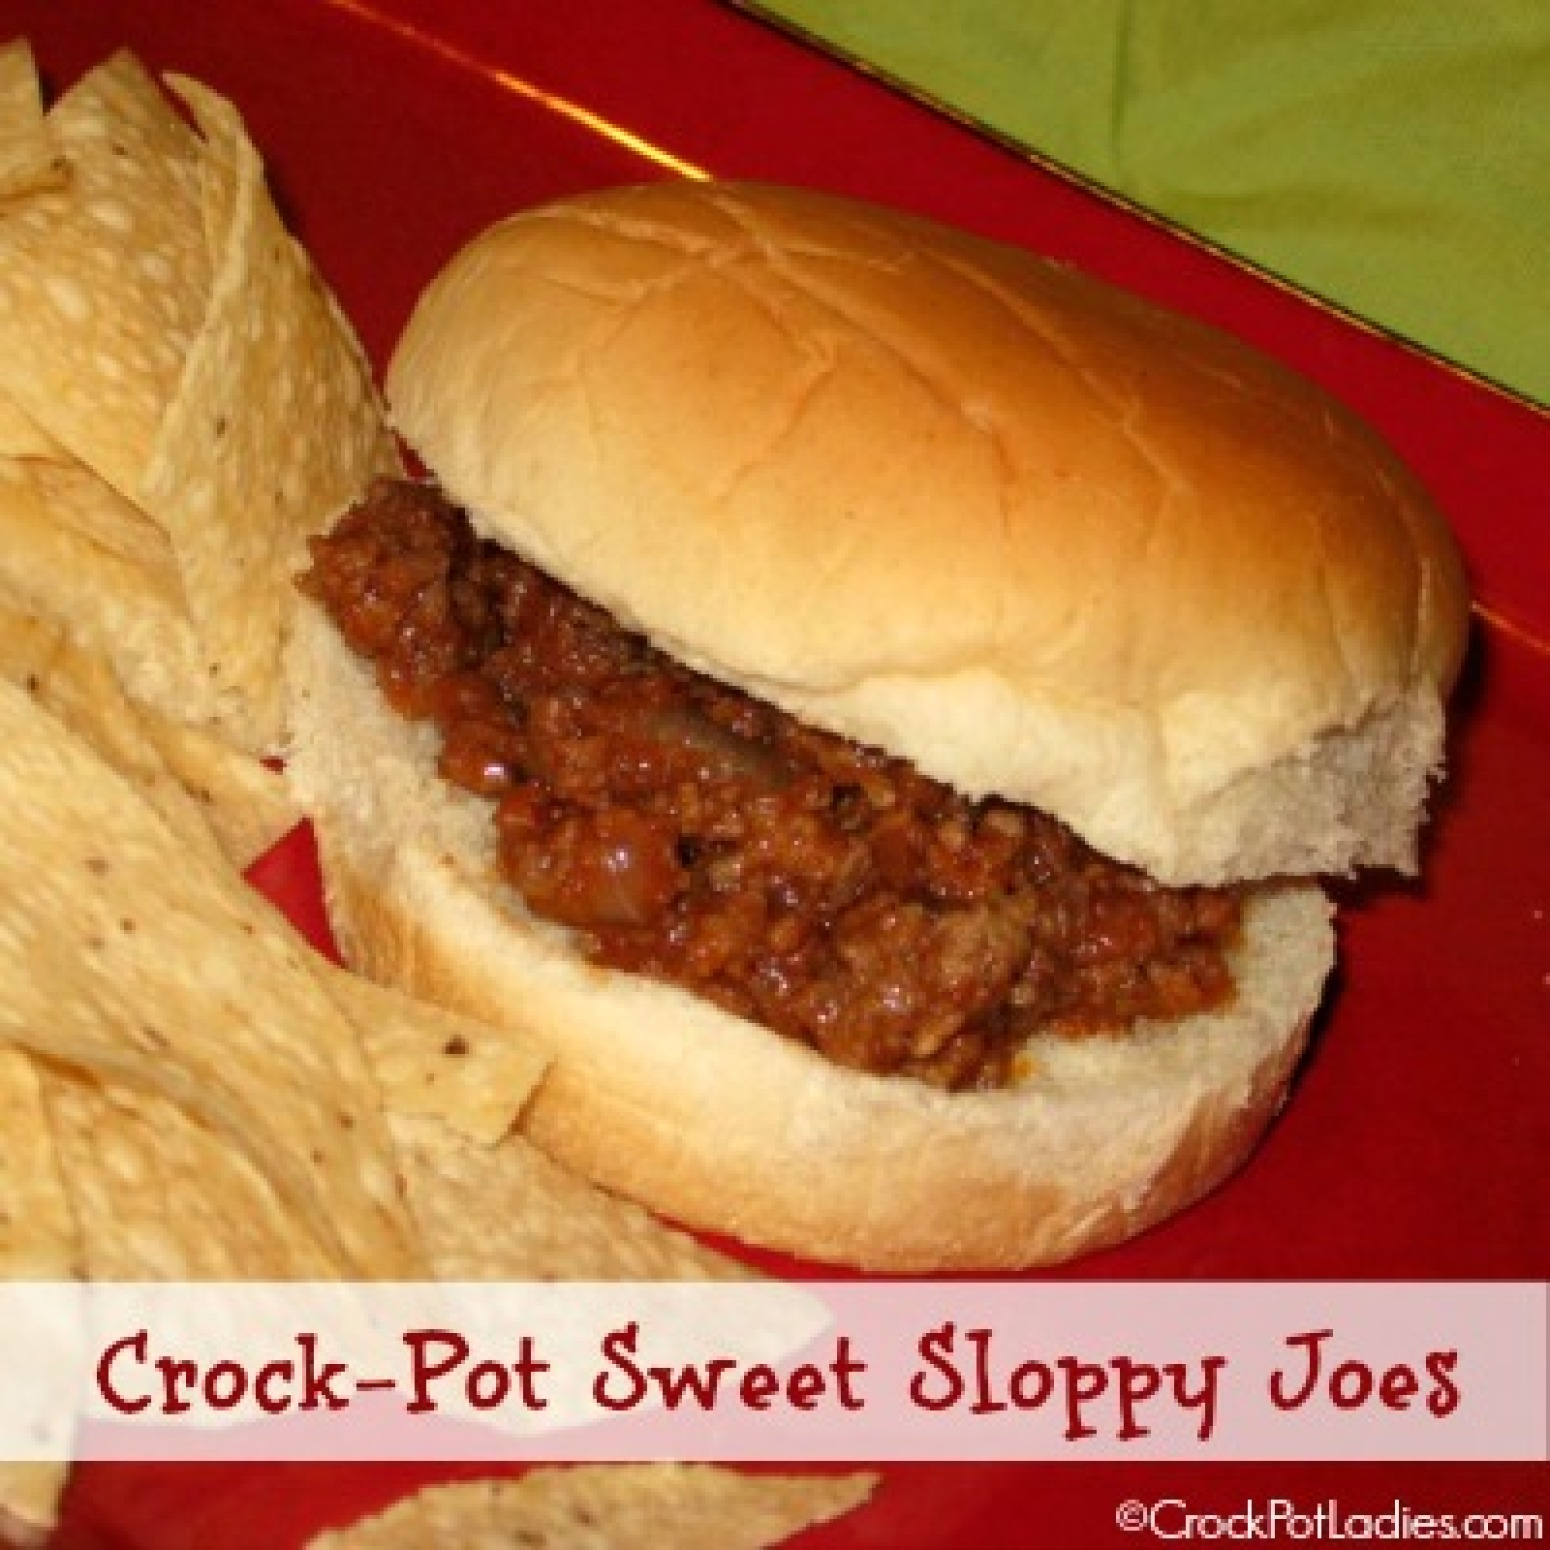 Crock-Pot Sweet Sloppy Joes Recipe | Just A Pinch Recipes